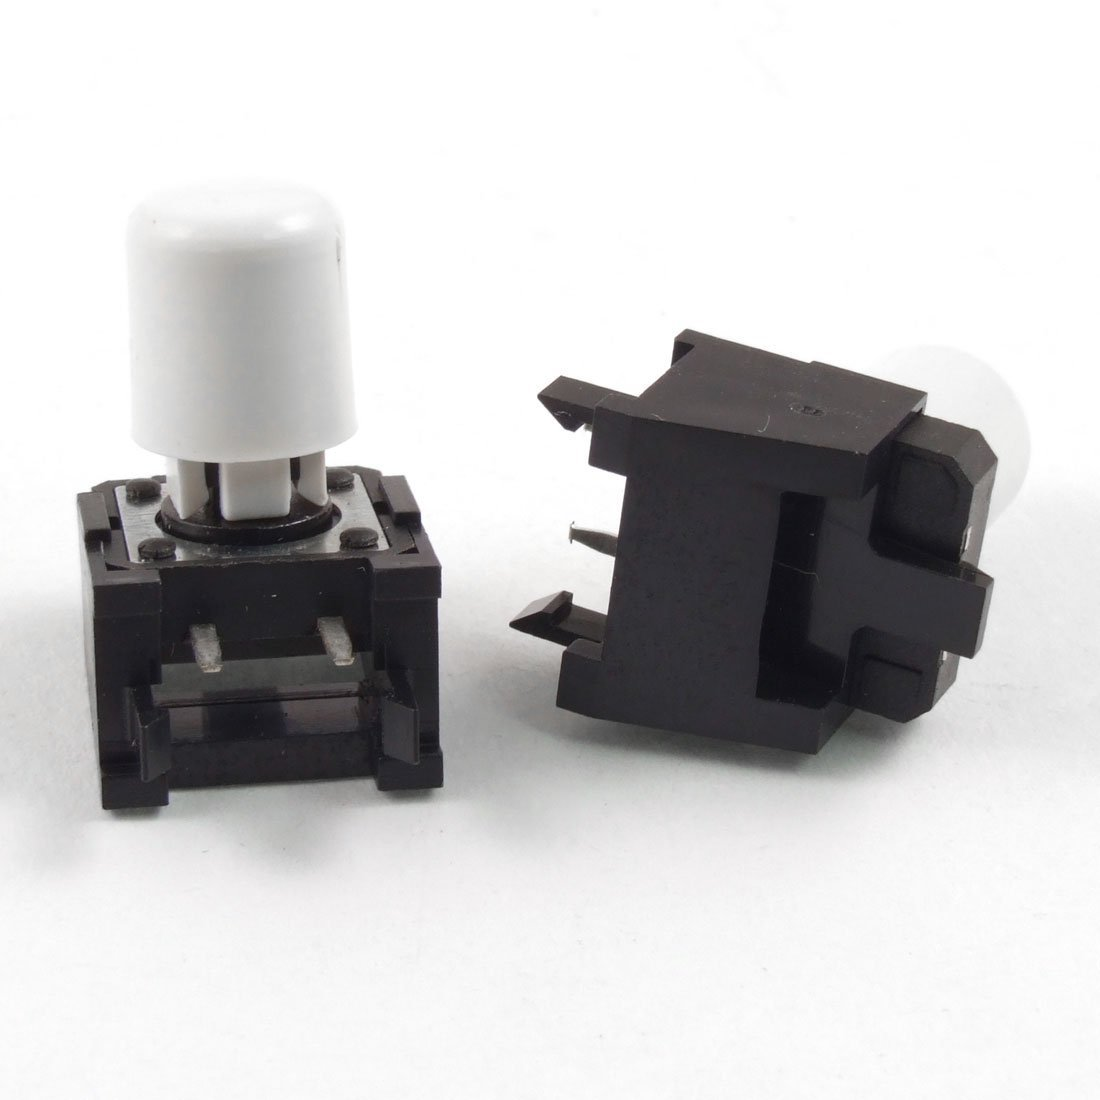 bouchon Blanc 12/ mm x 12/ mm x 16/ mm uxcell momentan/é tactile Push Button Switch